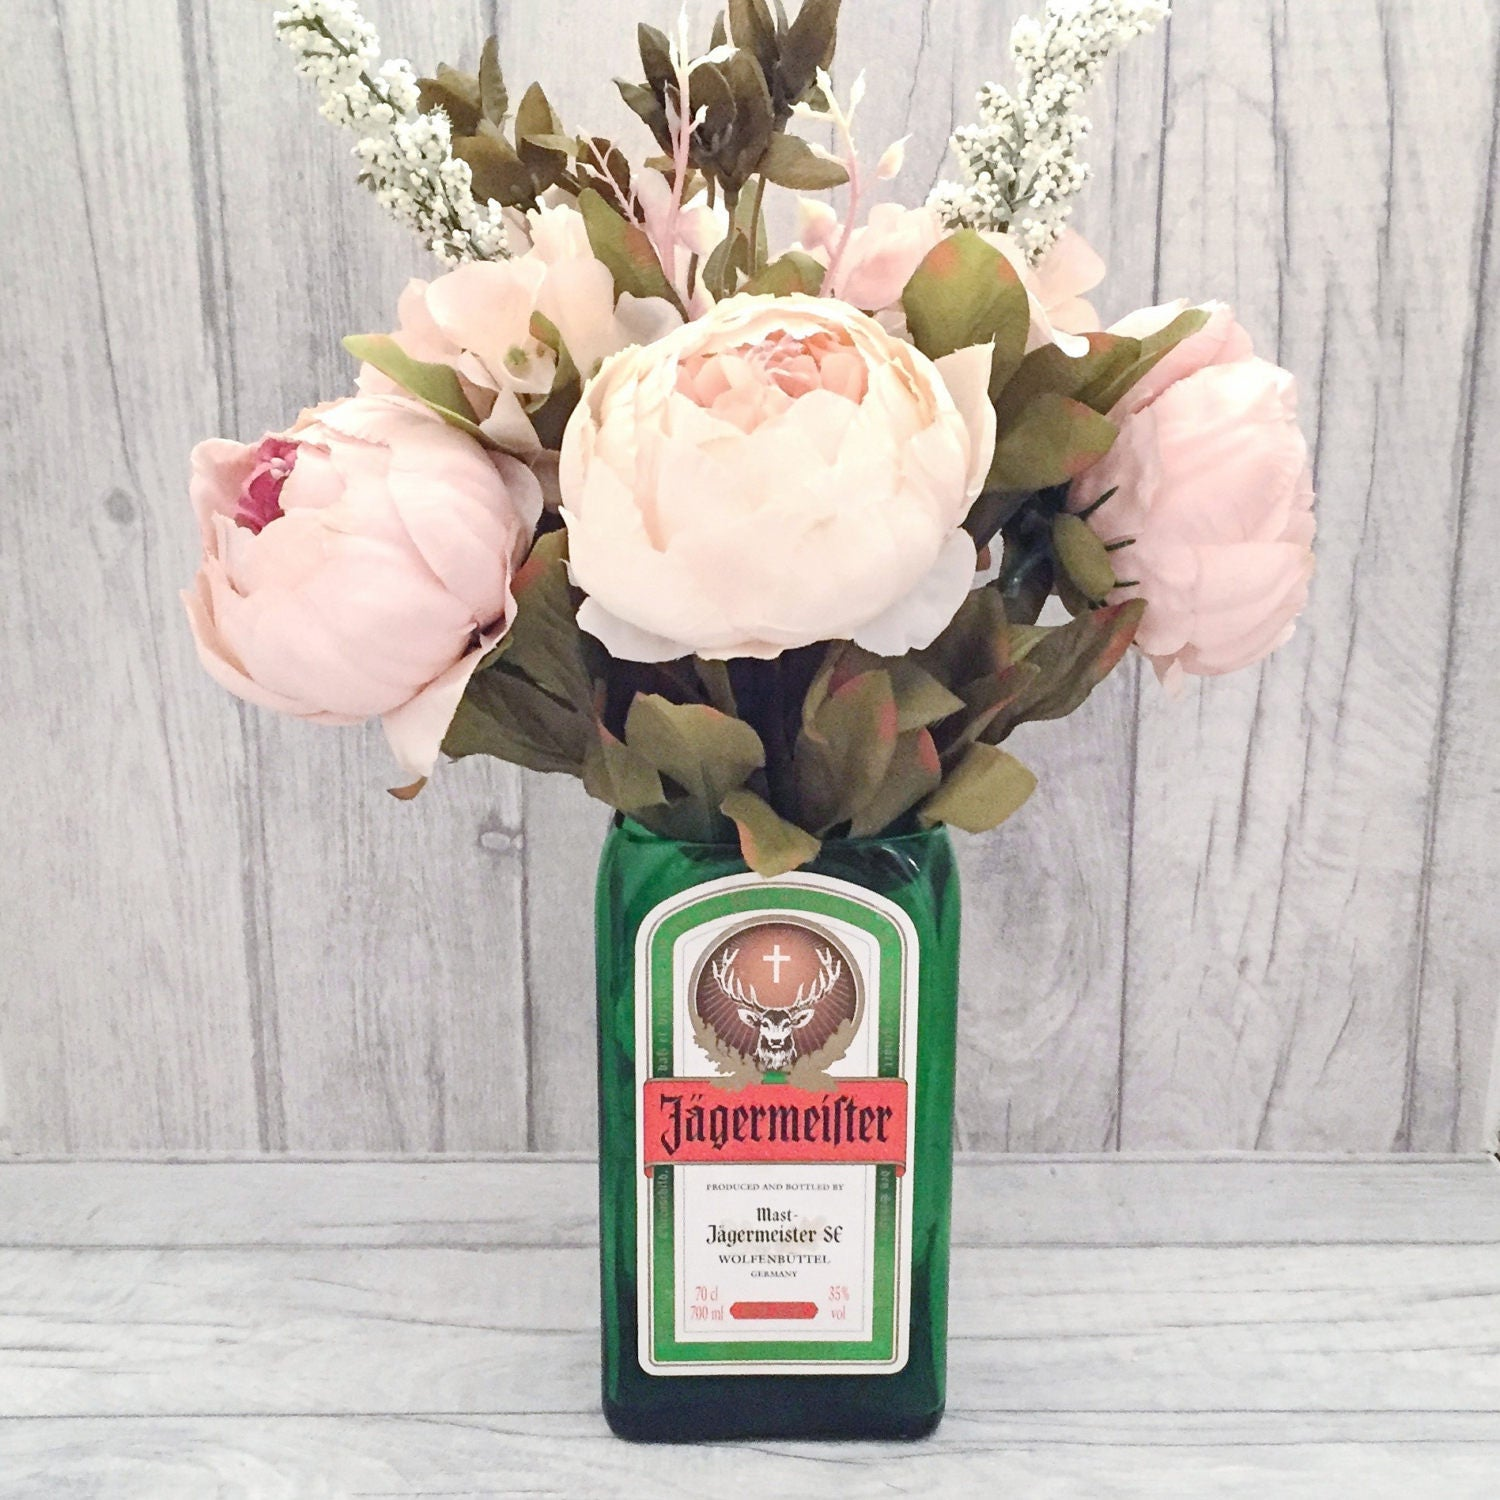 Jagermeister Vase (Recycled Bottle)